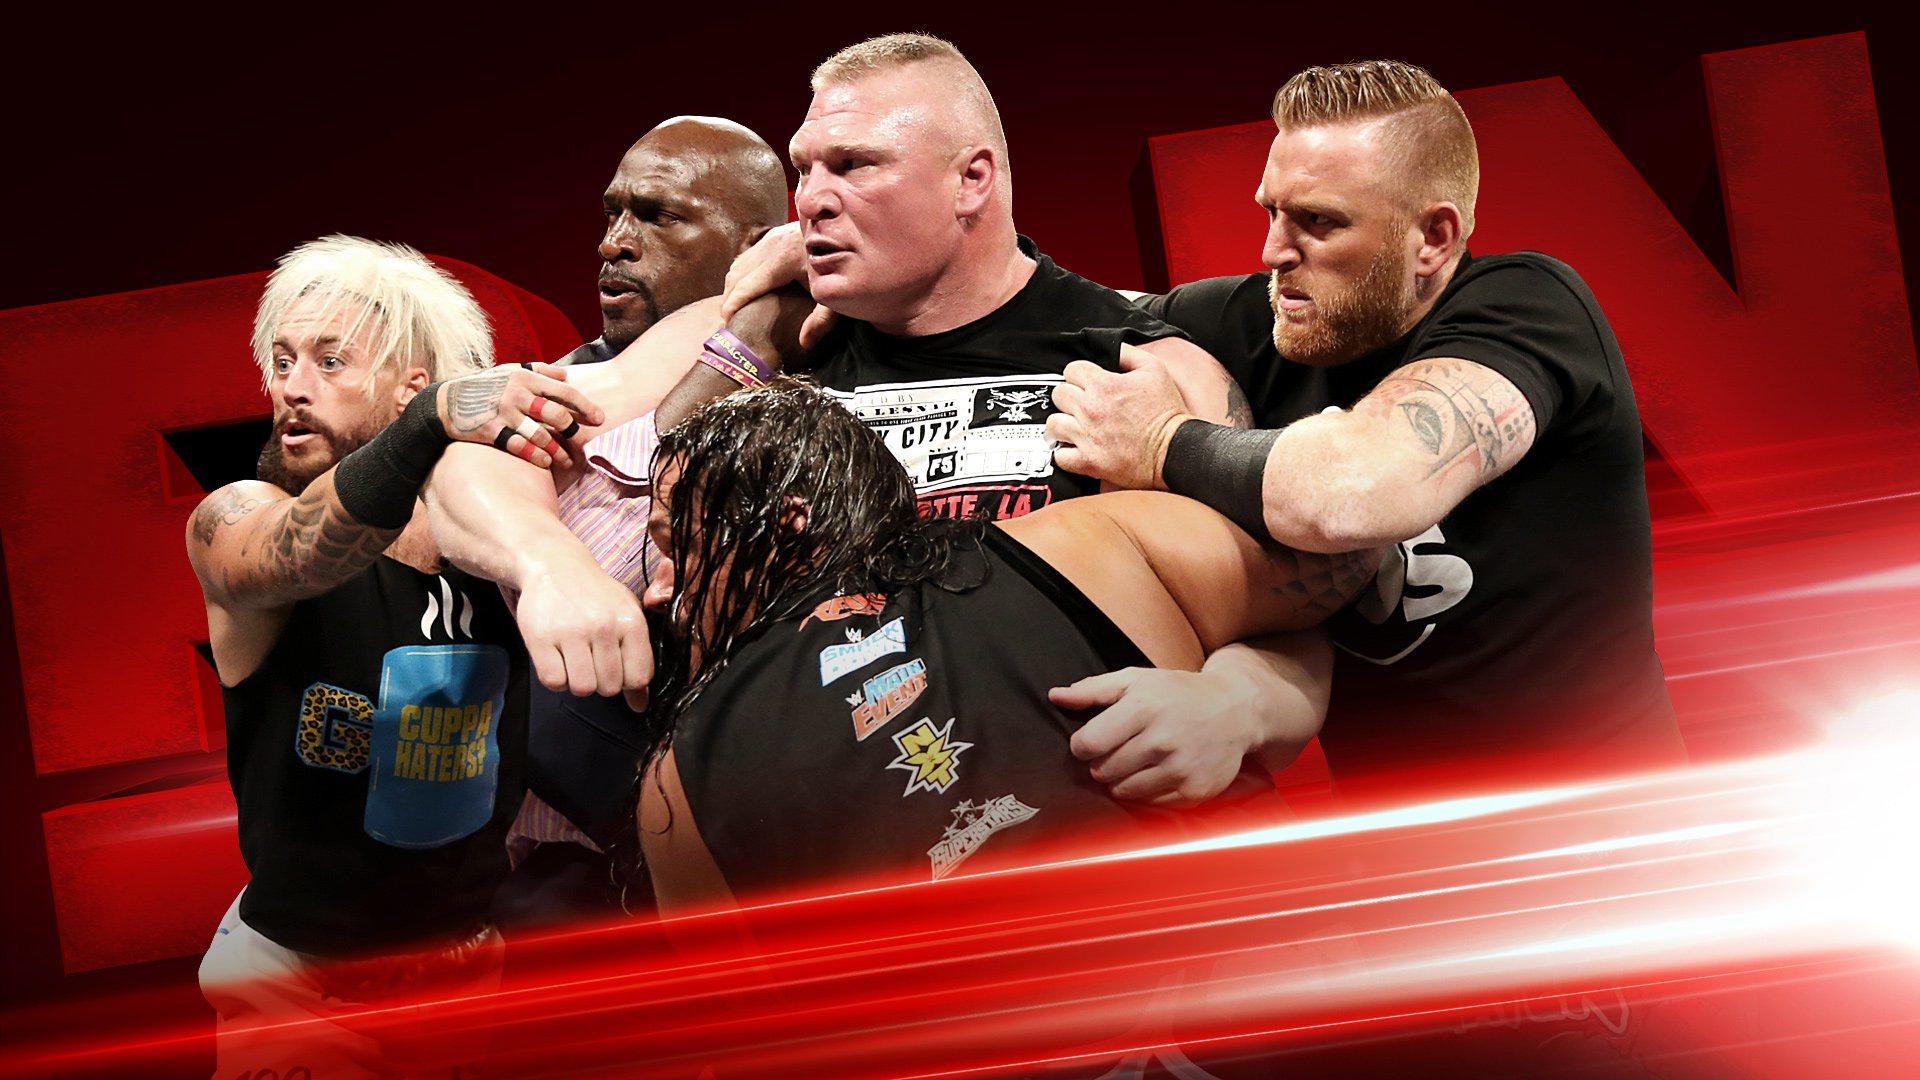 Brock Lesnar, Goldust & R-Truth, Enzo Amore & Big Cass, More